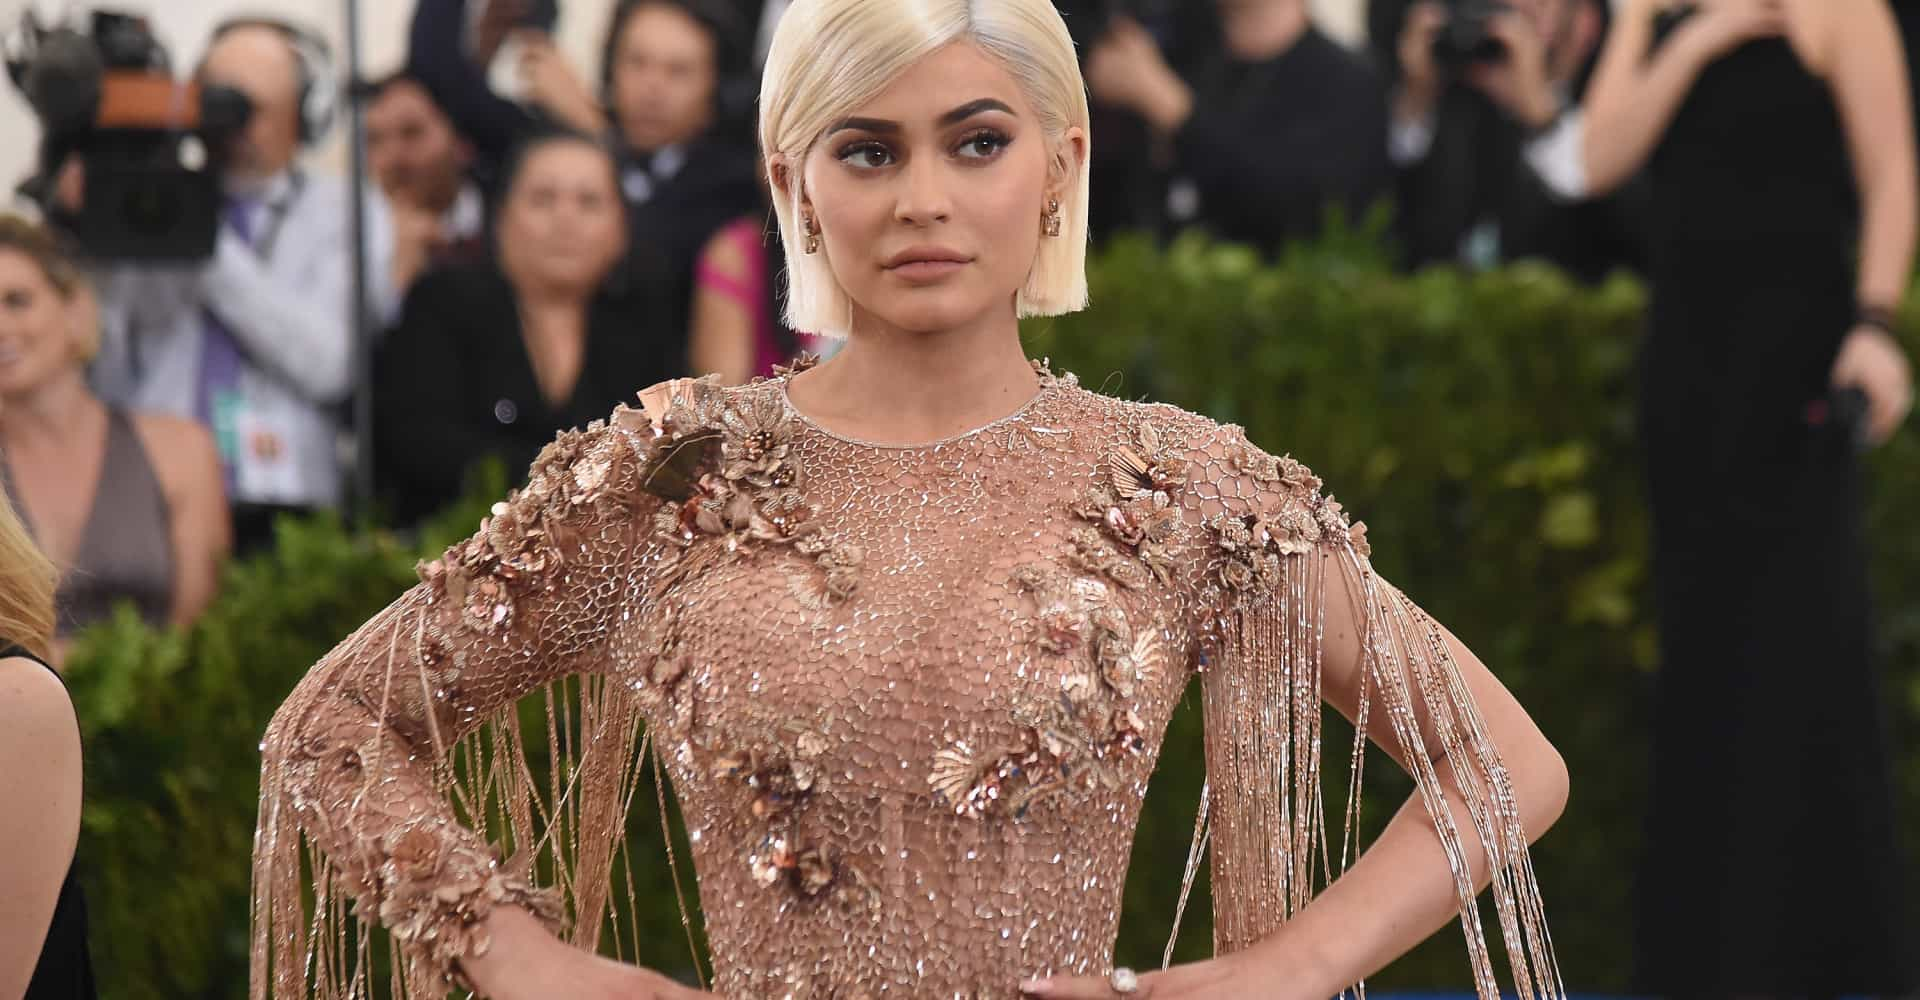 Kylie Jenner revealed her most absurd eating habit yet